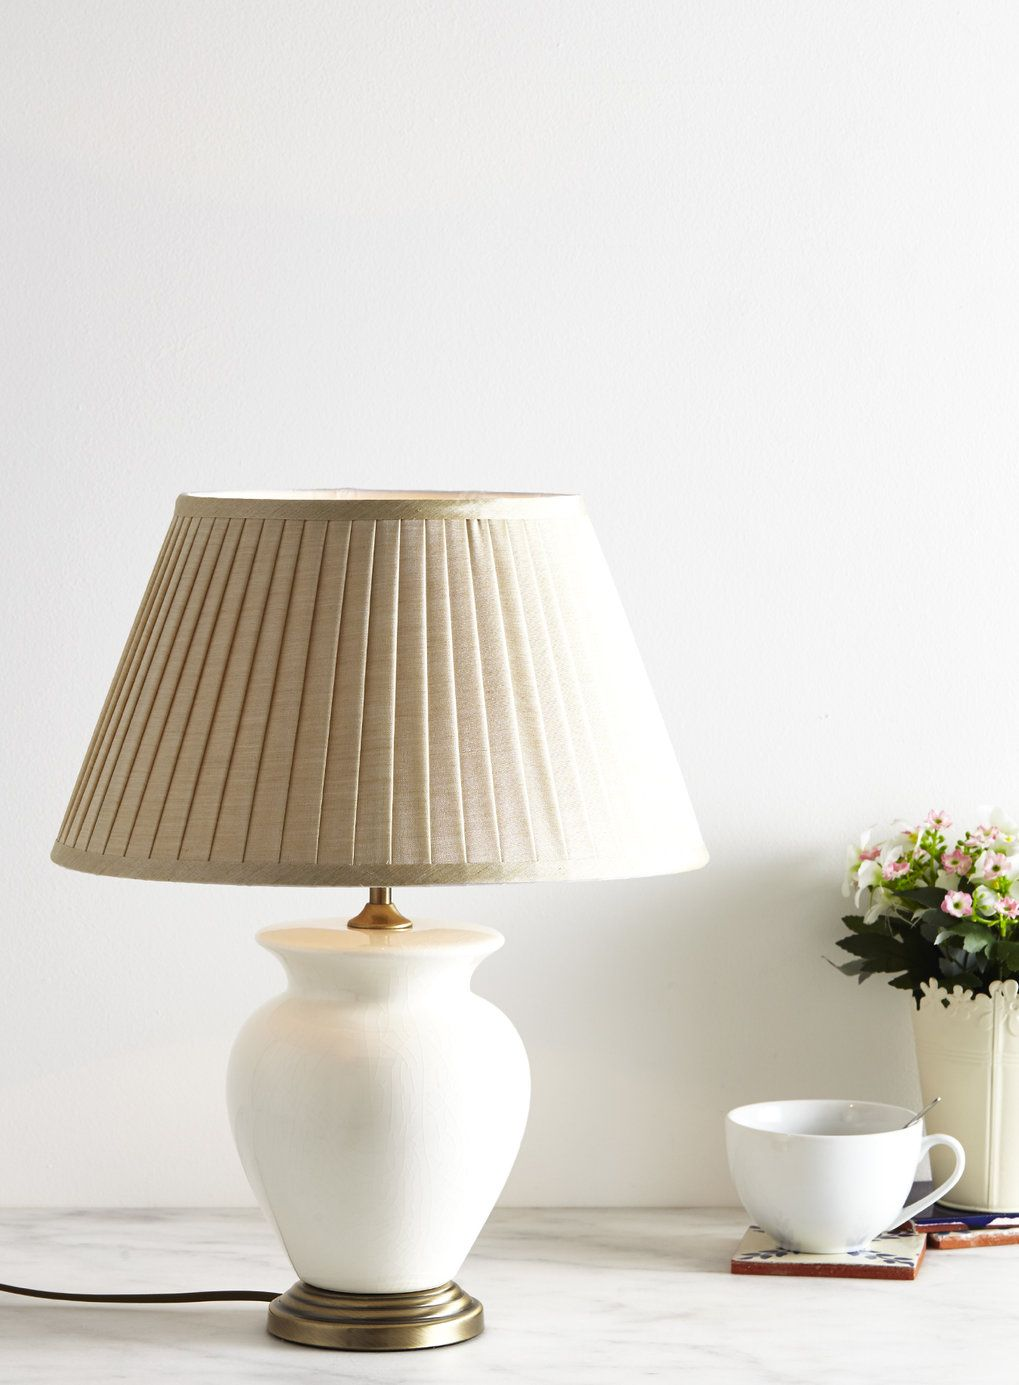 Cream small harris table lamp table lamps home lighting cream small harris table lamp table lamps home lighting furniture bhs aloadofball Images